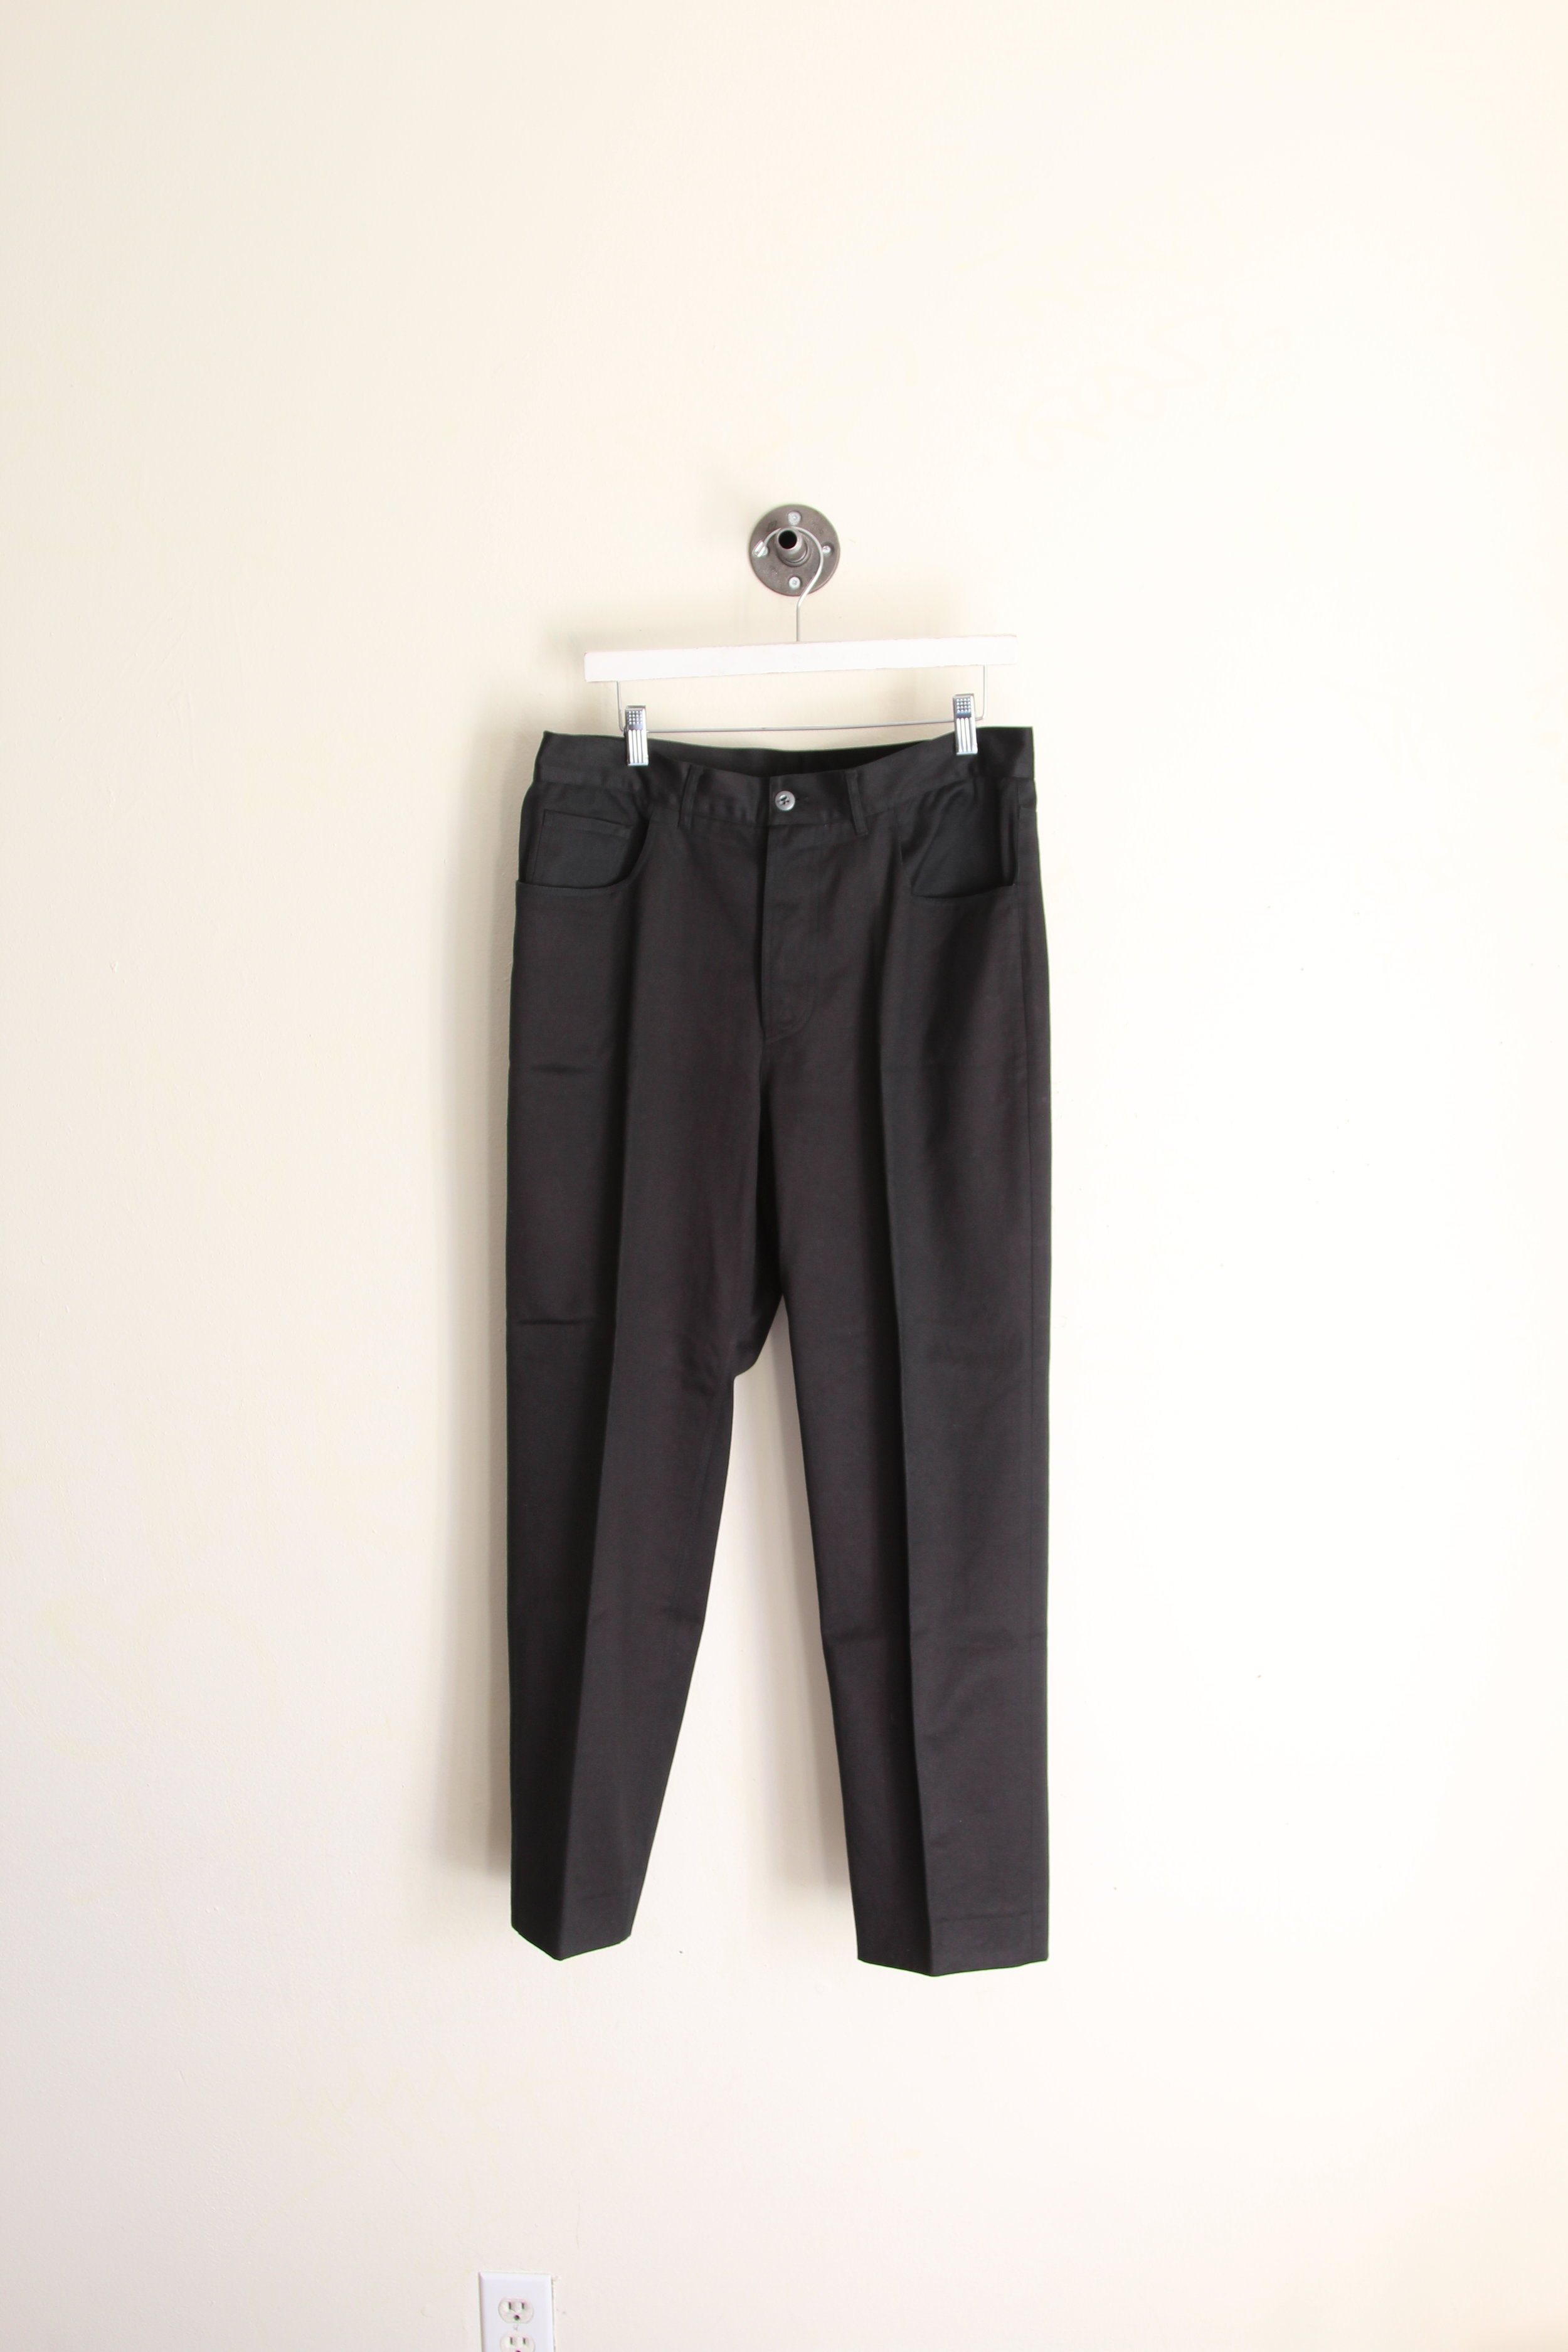 Helmut Lang Early 90's Jean Cut Cropped Trousers